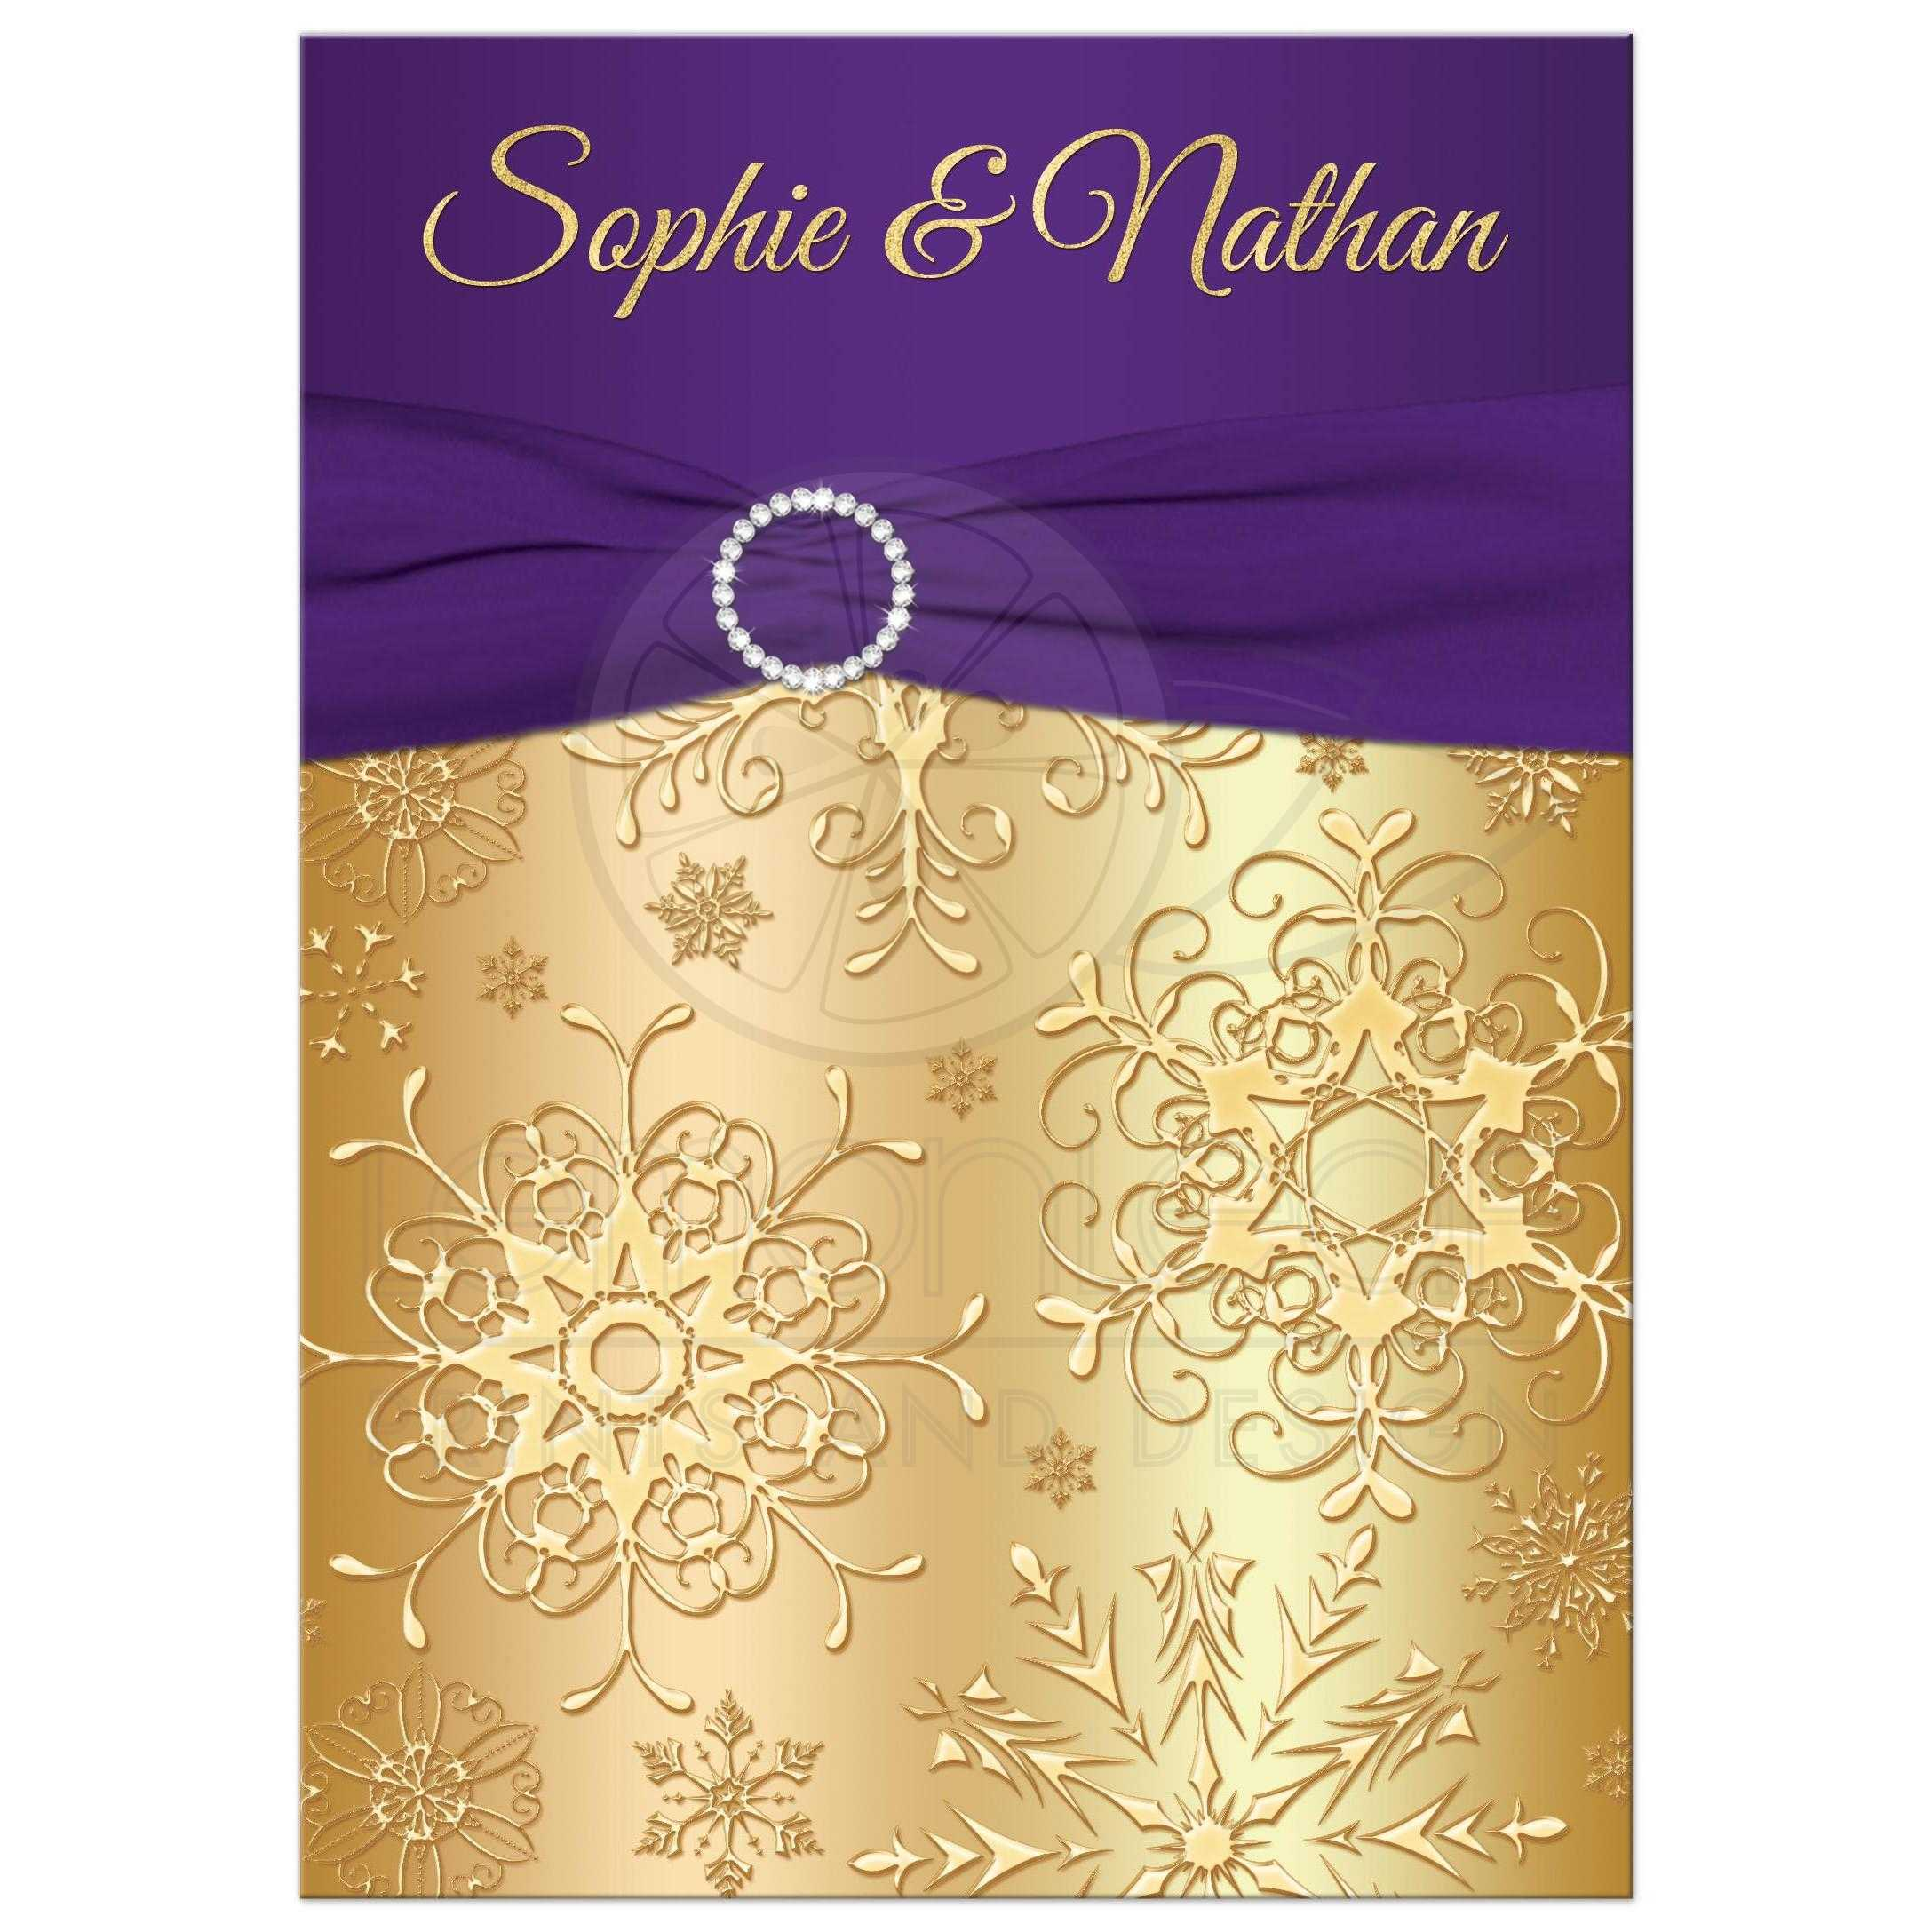 Great Purple And Gold Winter Wedding Invitation With Snowflakes, Ribbon And  Jewel Buckle Brooch.